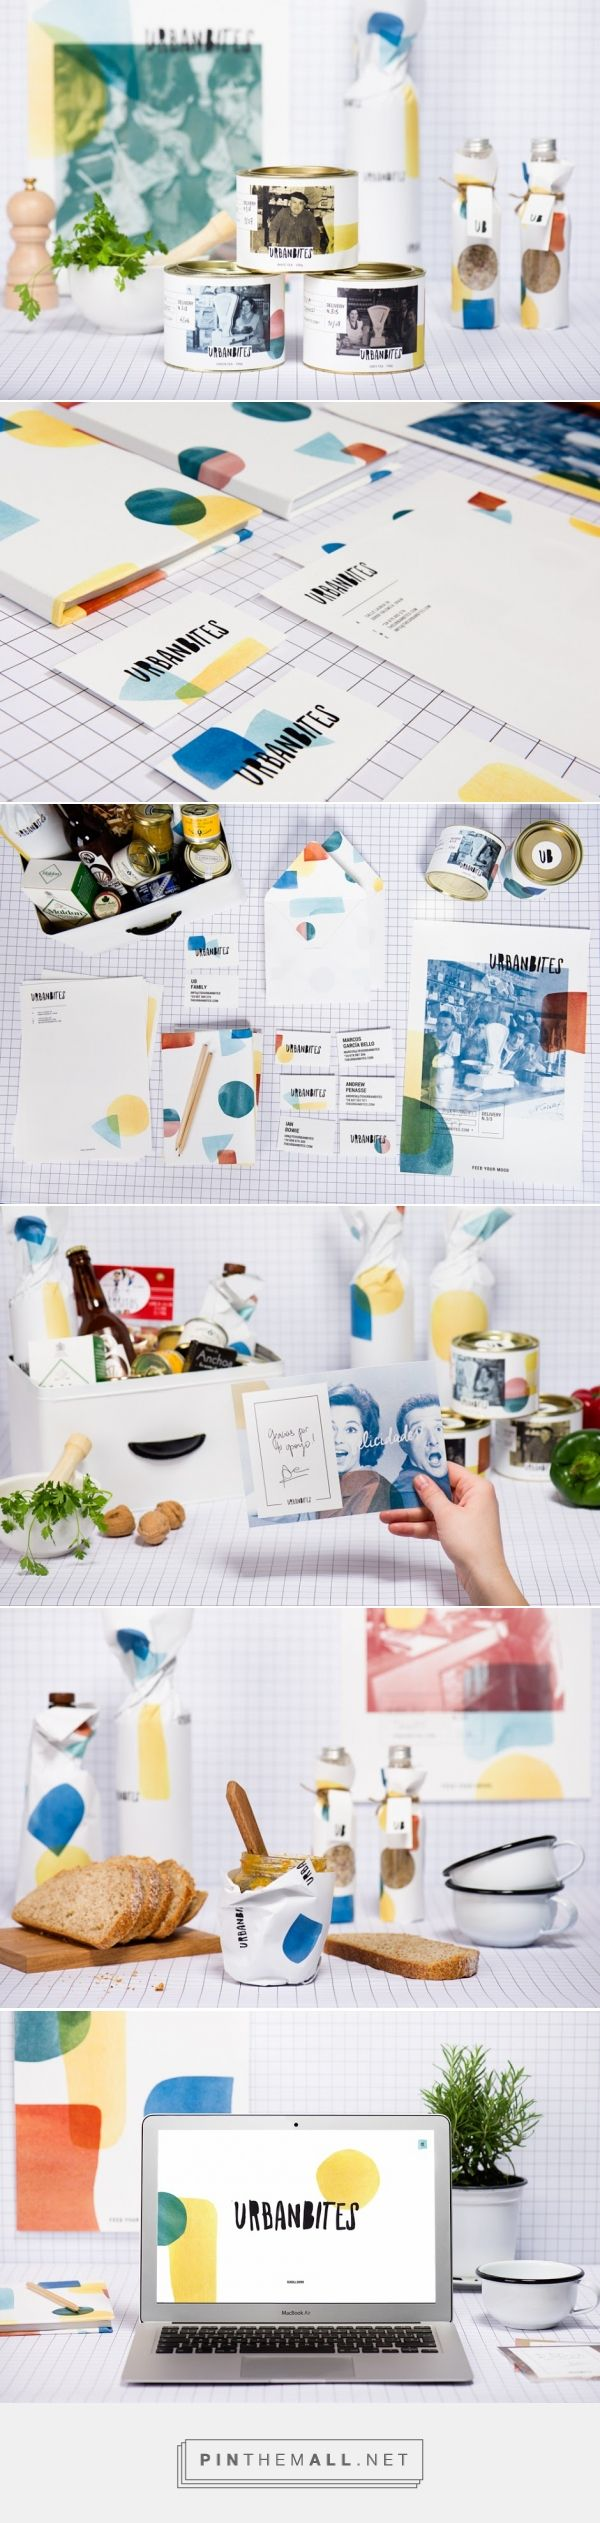 Feed you rmood with Urbanbites, packaging designed by Masquespacio (Spain) - http://www.packagingoftheworld.com/2016/04/urbanbites.html